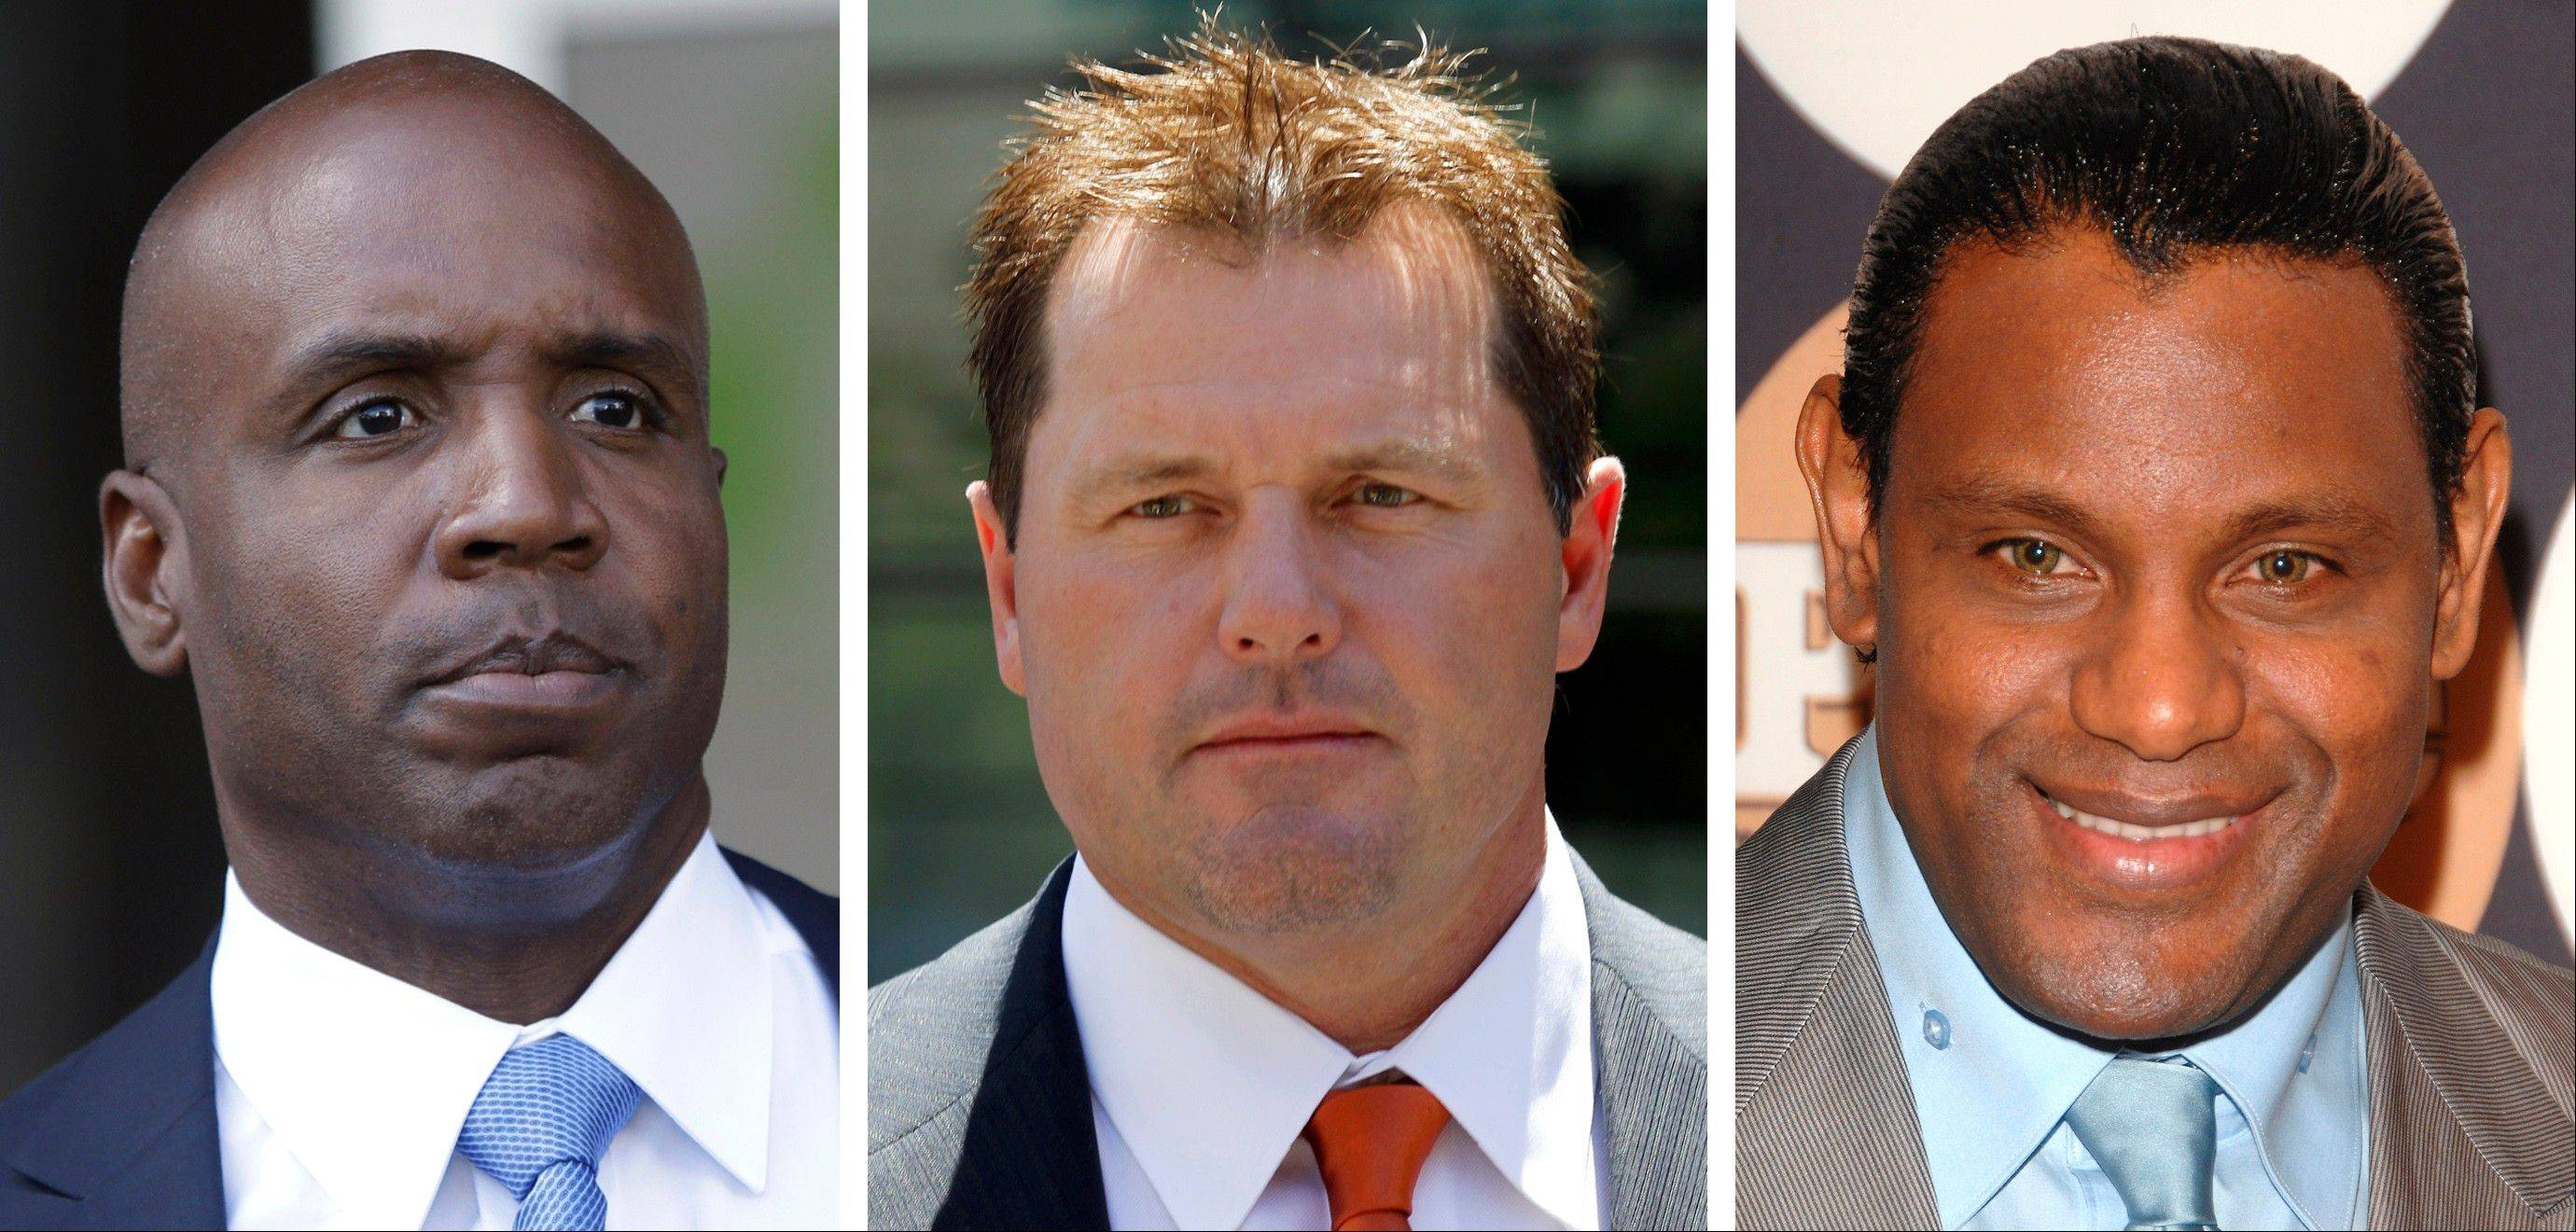 Barry Bonds, from left, Roger Clemens, and Sammy Sosa likely won't get enough votes to get elected to the National Baseball Hall of Fame, according to most surveys of voters.